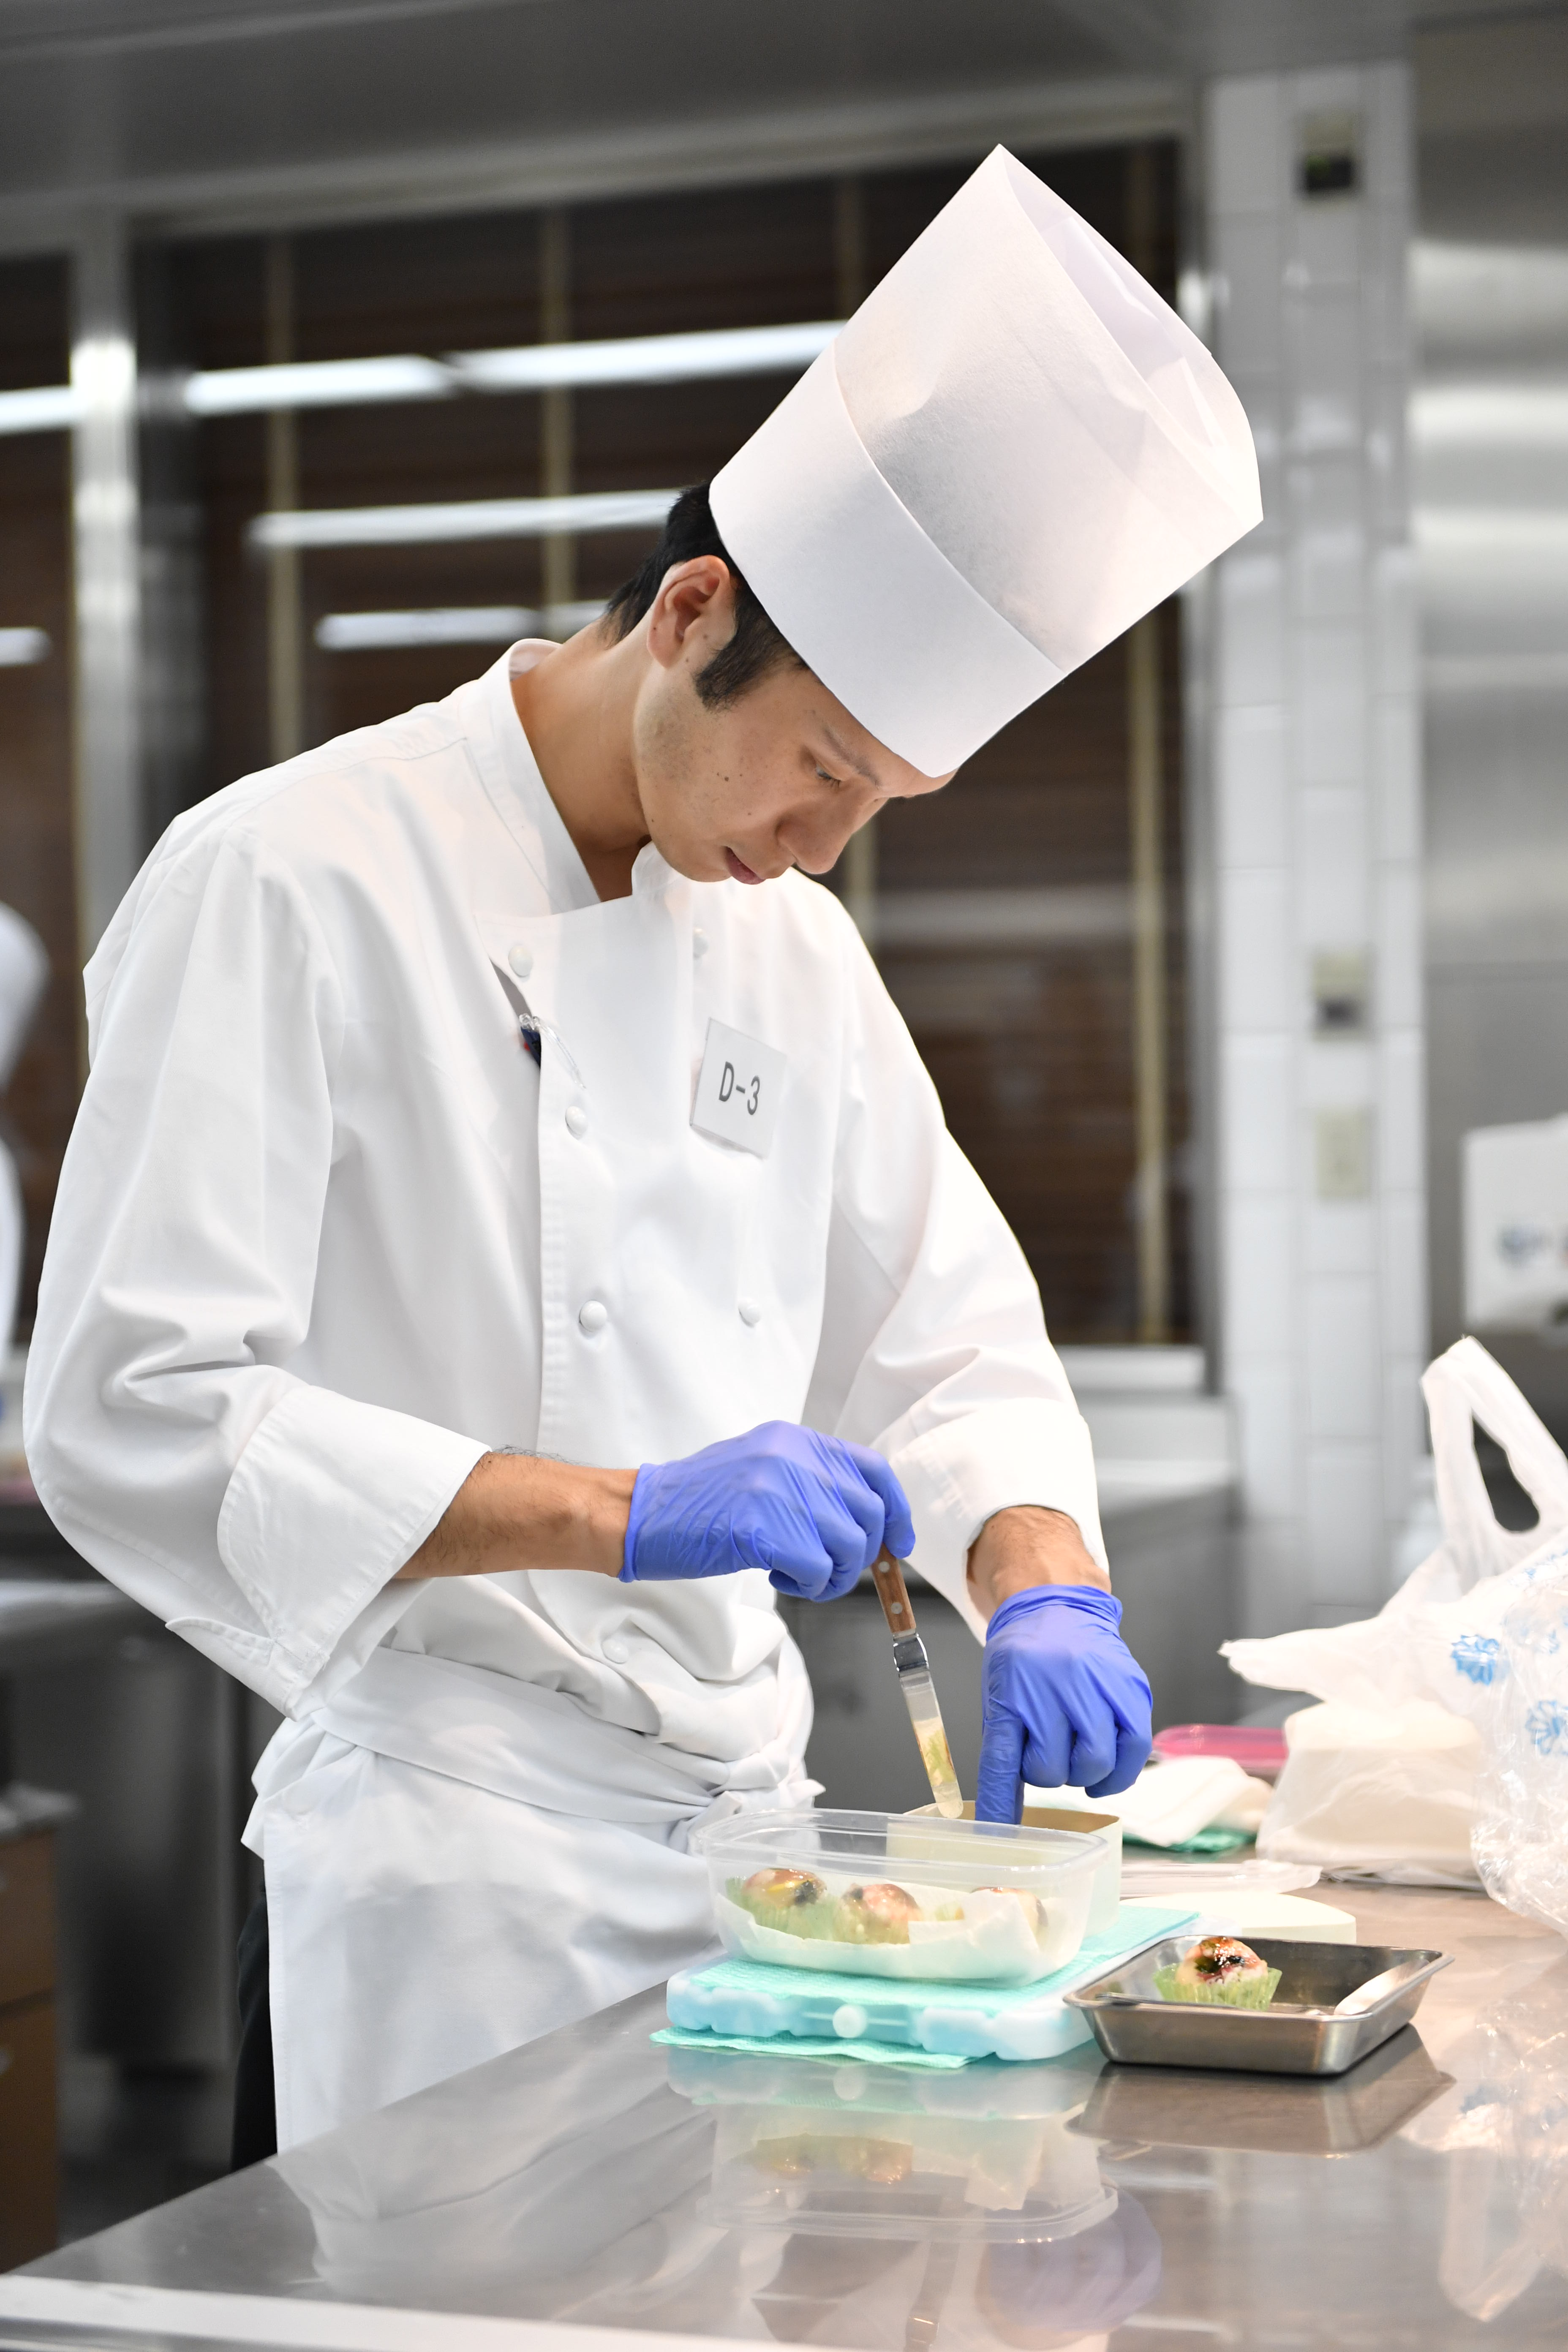 Man wearing white chef coat & hat and purple gloves holds knife while making sushi dish